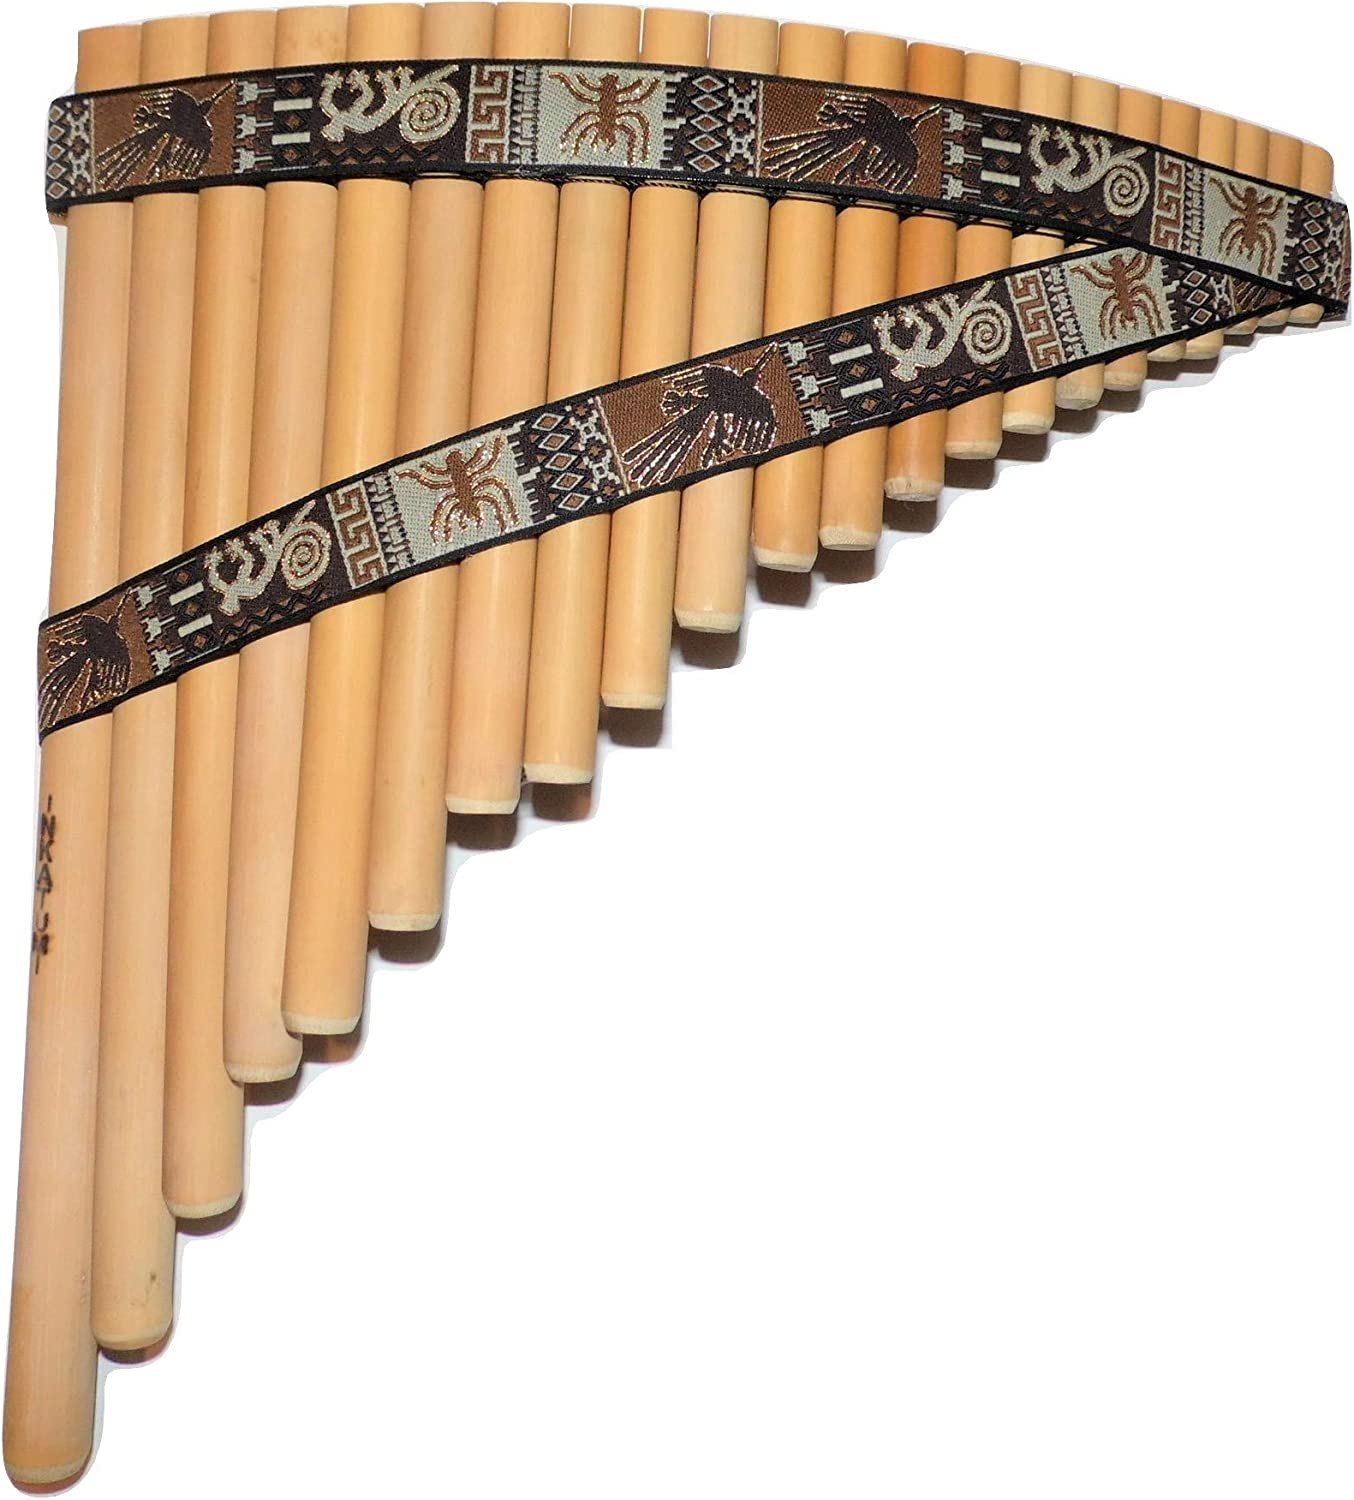 Case-Included Bamboo Pan Flute 18 pipes Nazca Design